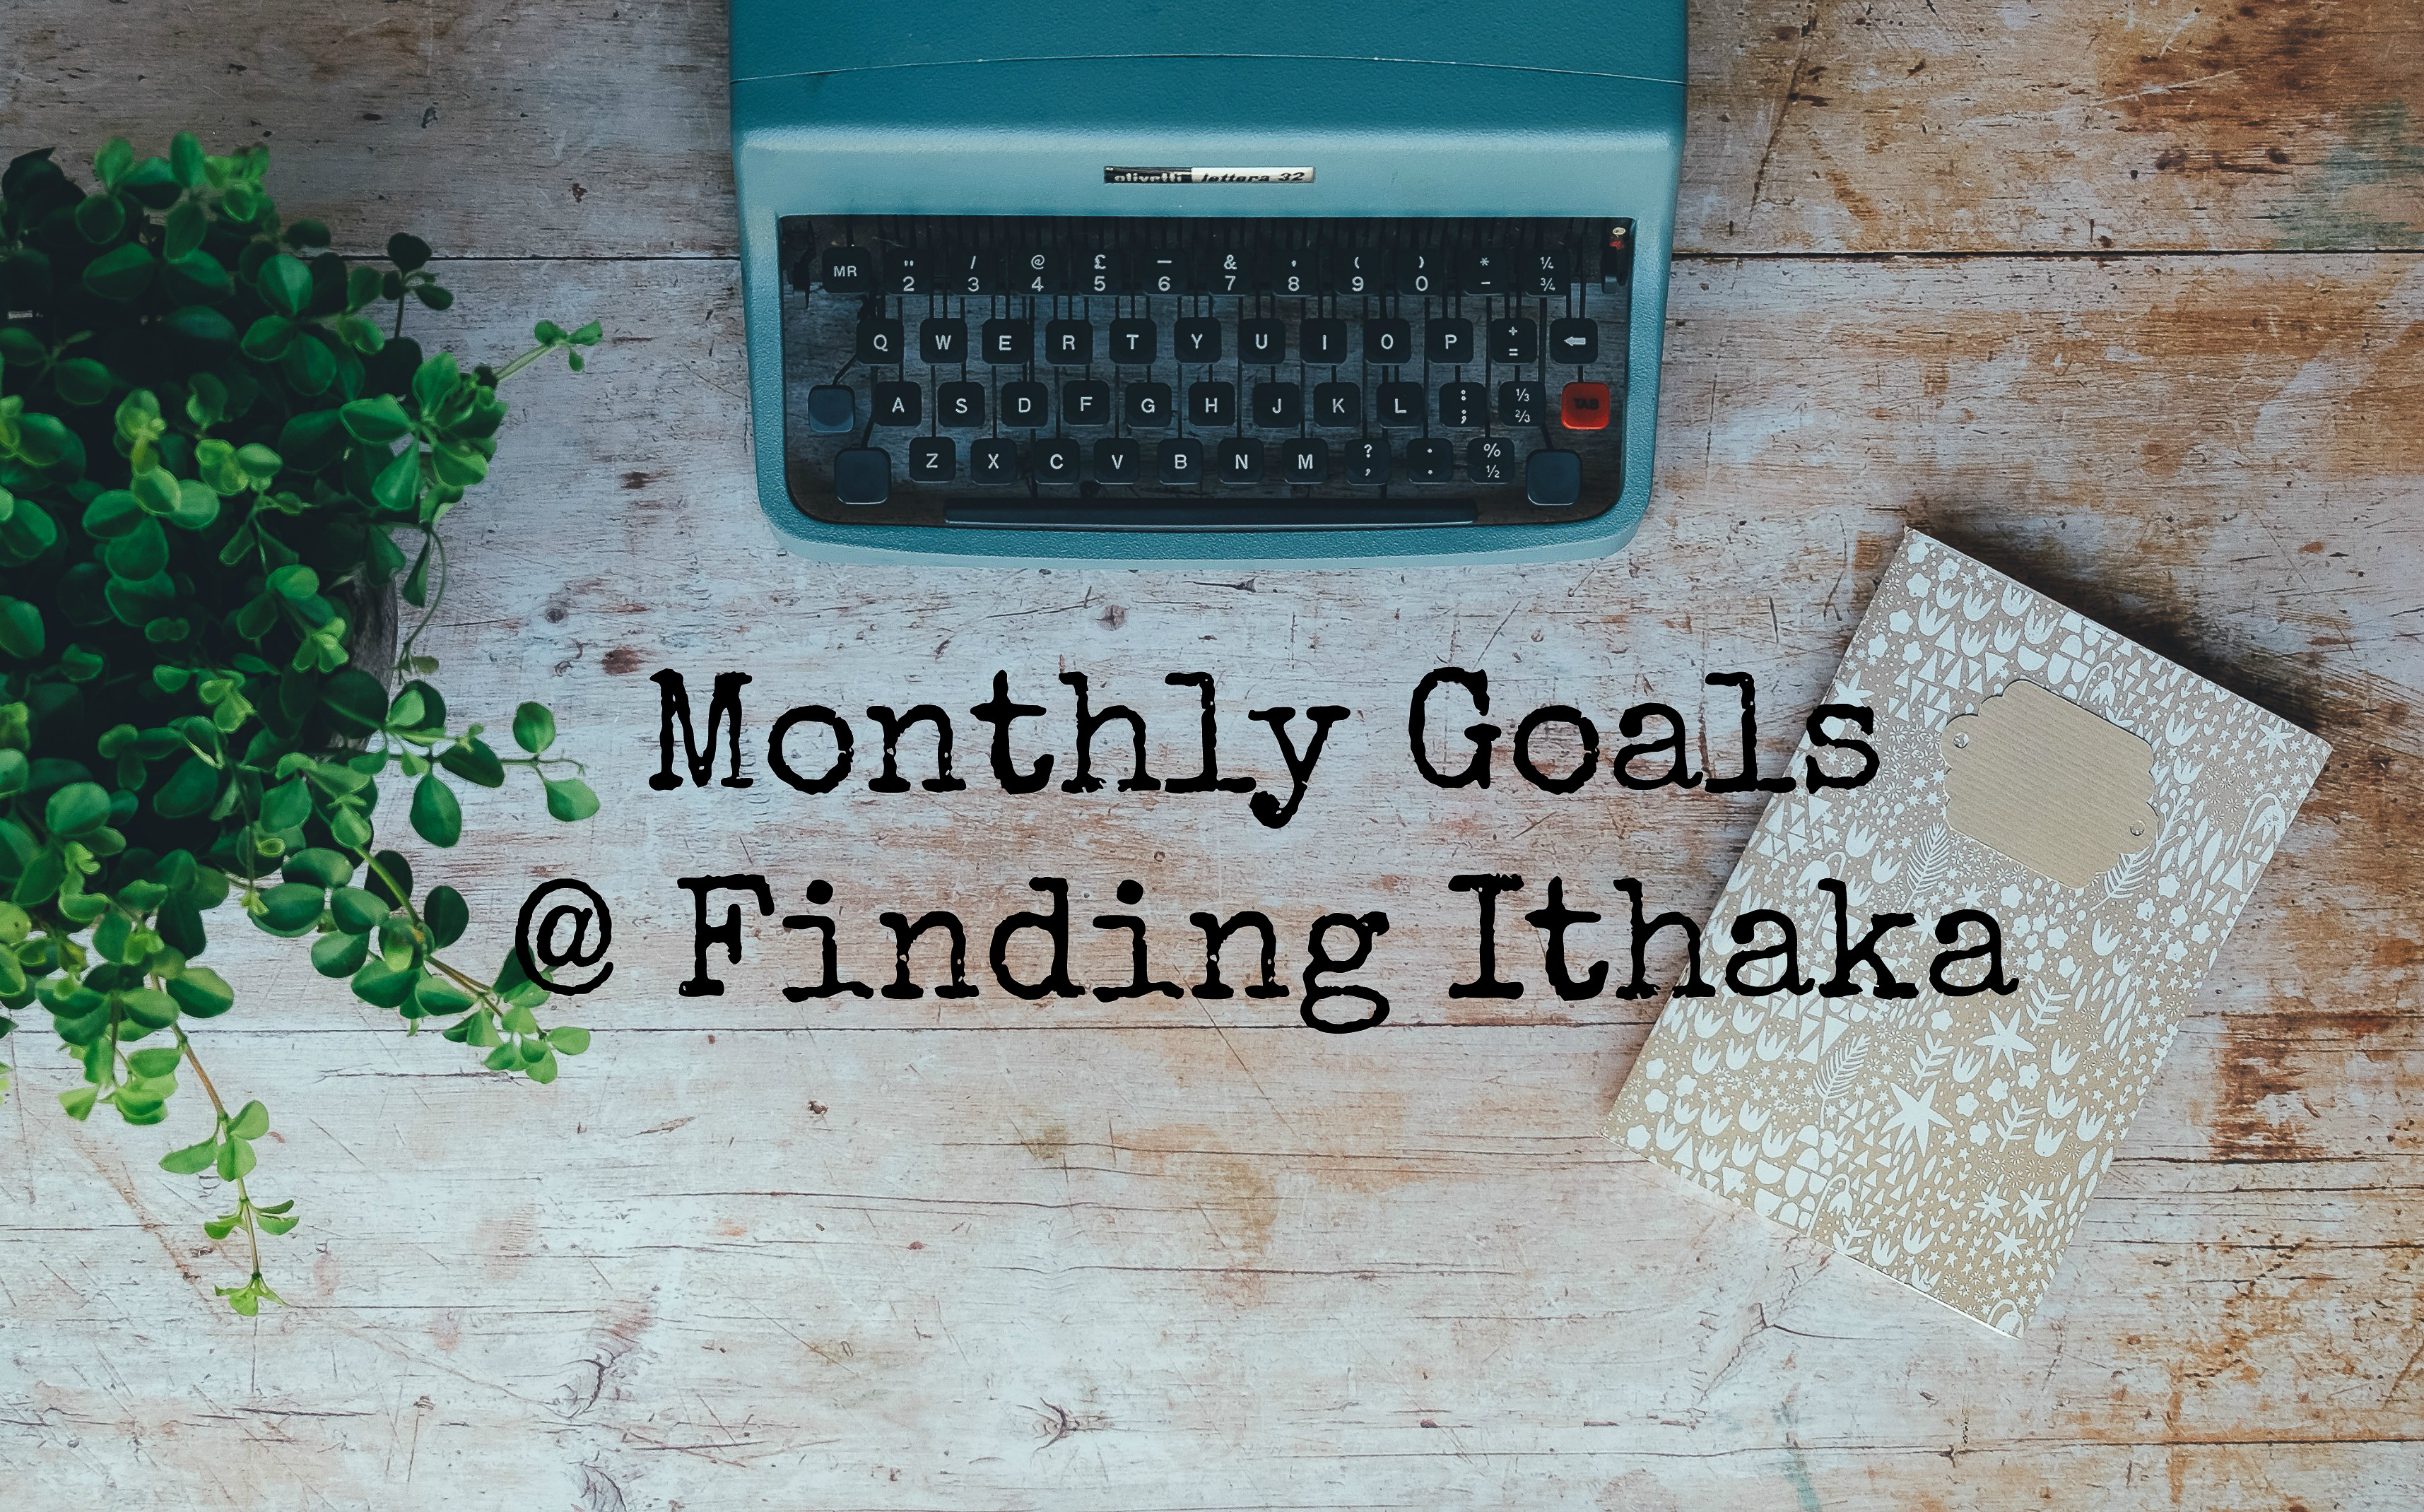 Monthly Goals FInding Ithaka